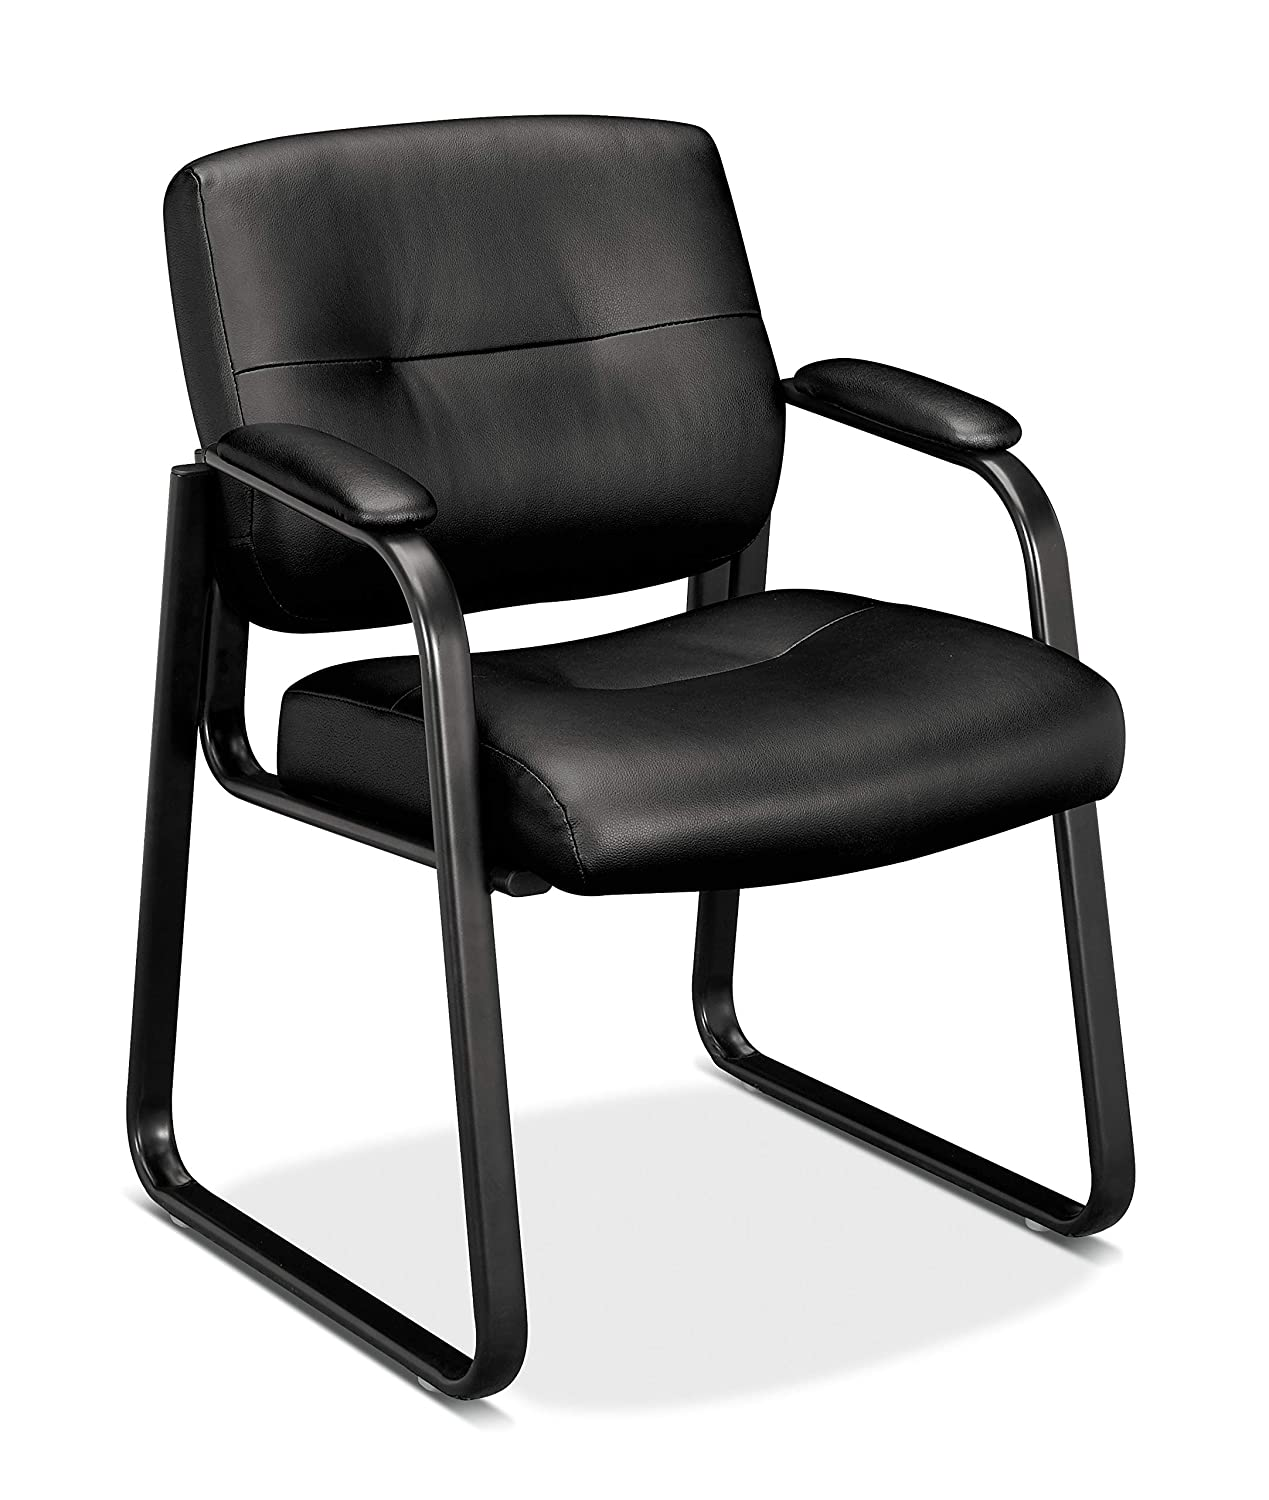 basyx by HON VL690 Series Guest Chair with Sled Base and Padded Arms, Black BSX (Basyx) c/o HON BSXVL693SB11